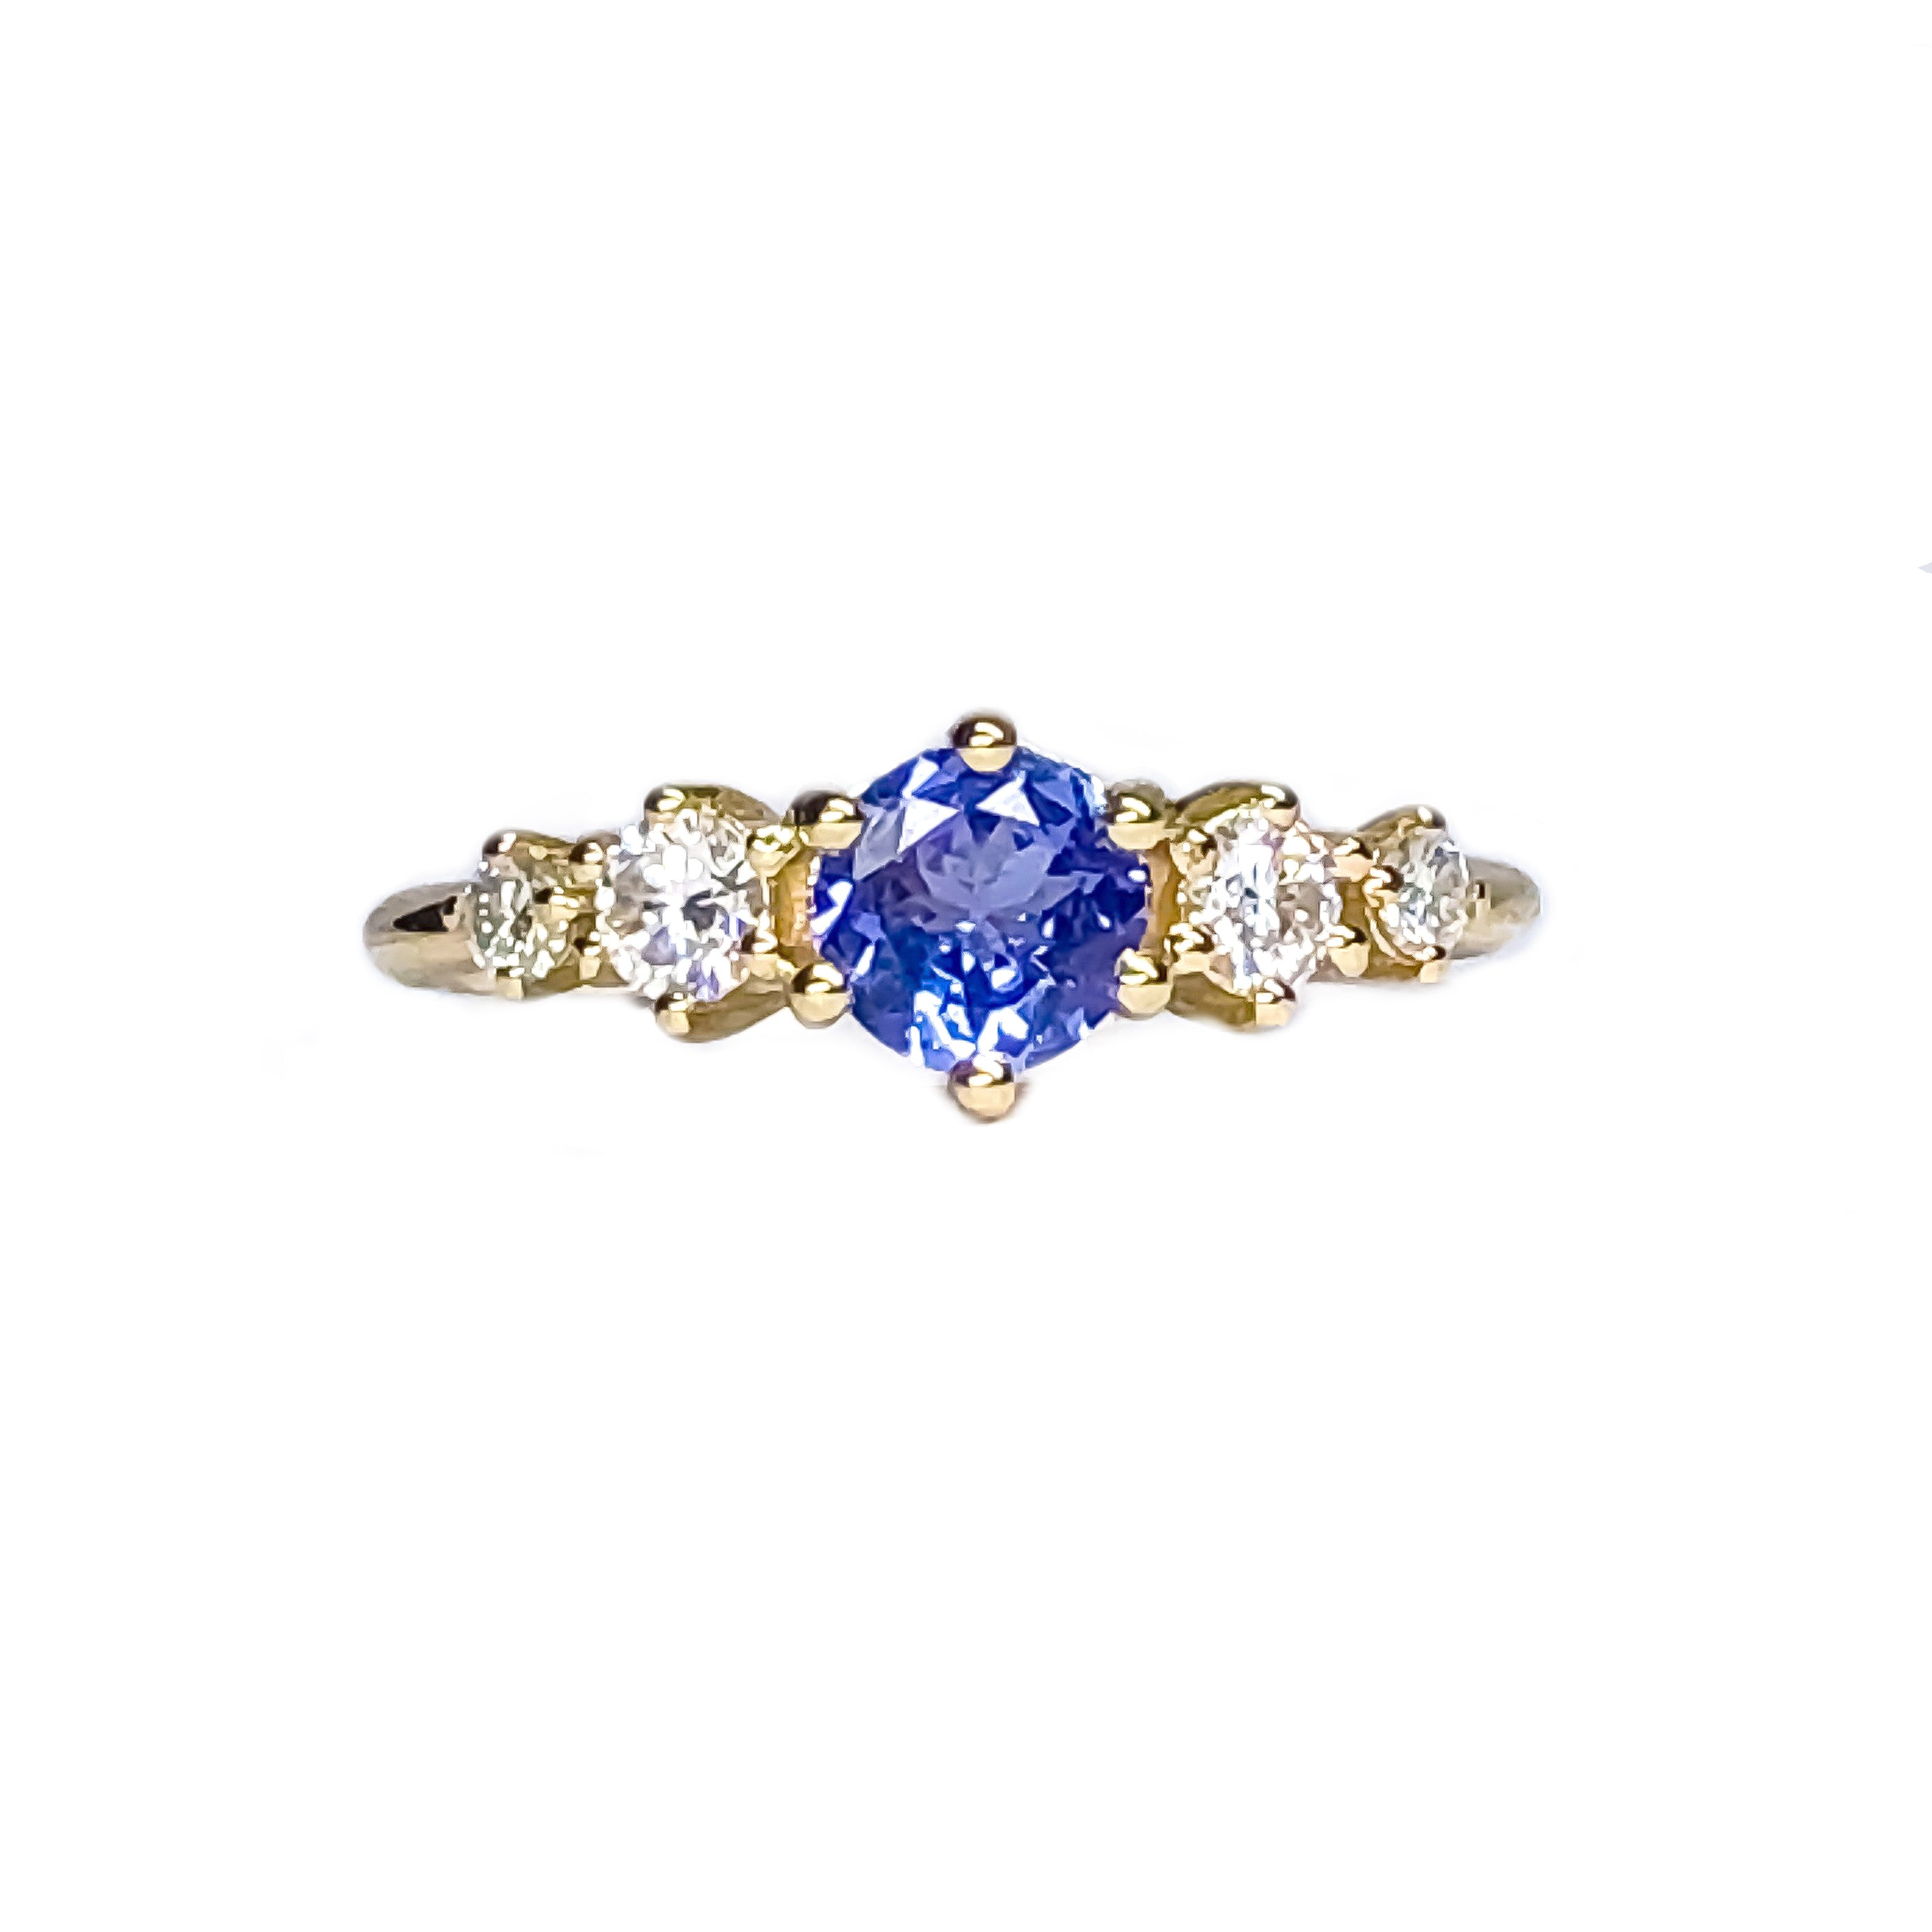 Betty Tanzanite Mossanite Ring - MANARI.eu